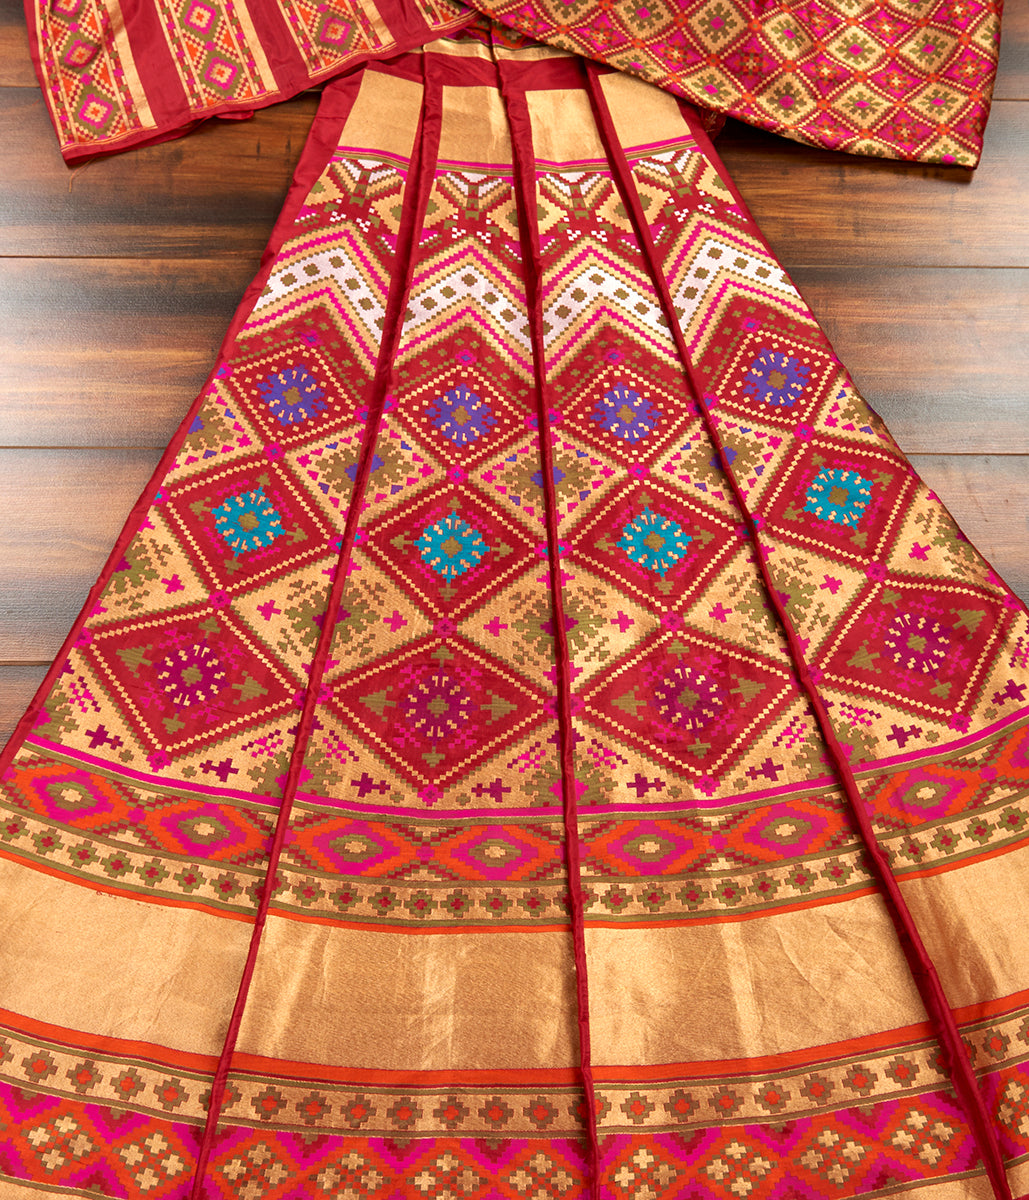 Handwoven Mahroon Patola Lehenga with Meenakari